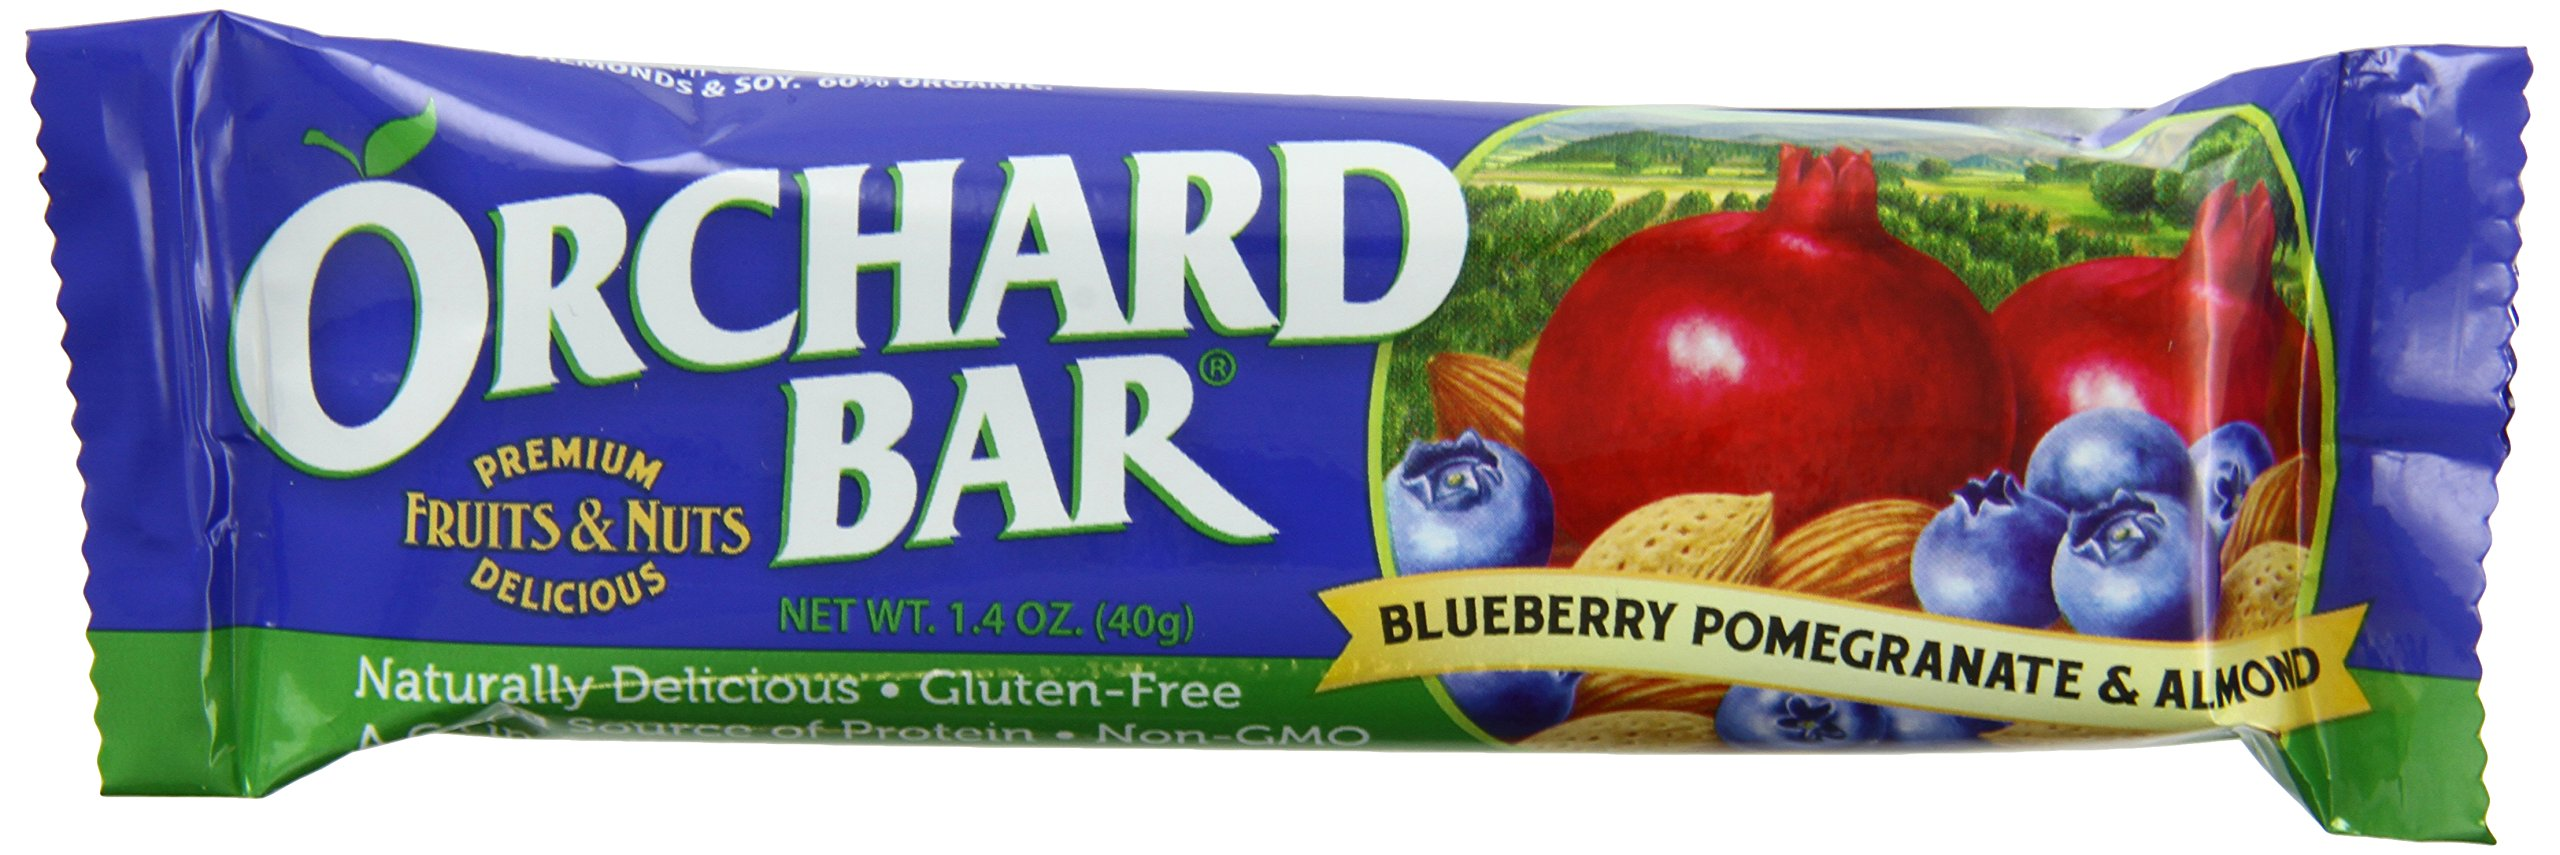 Orchard Bars Fruit and Nut Bar, Blueberry Pomegranate Almond, 1.4 Ounce (Pack of 12)